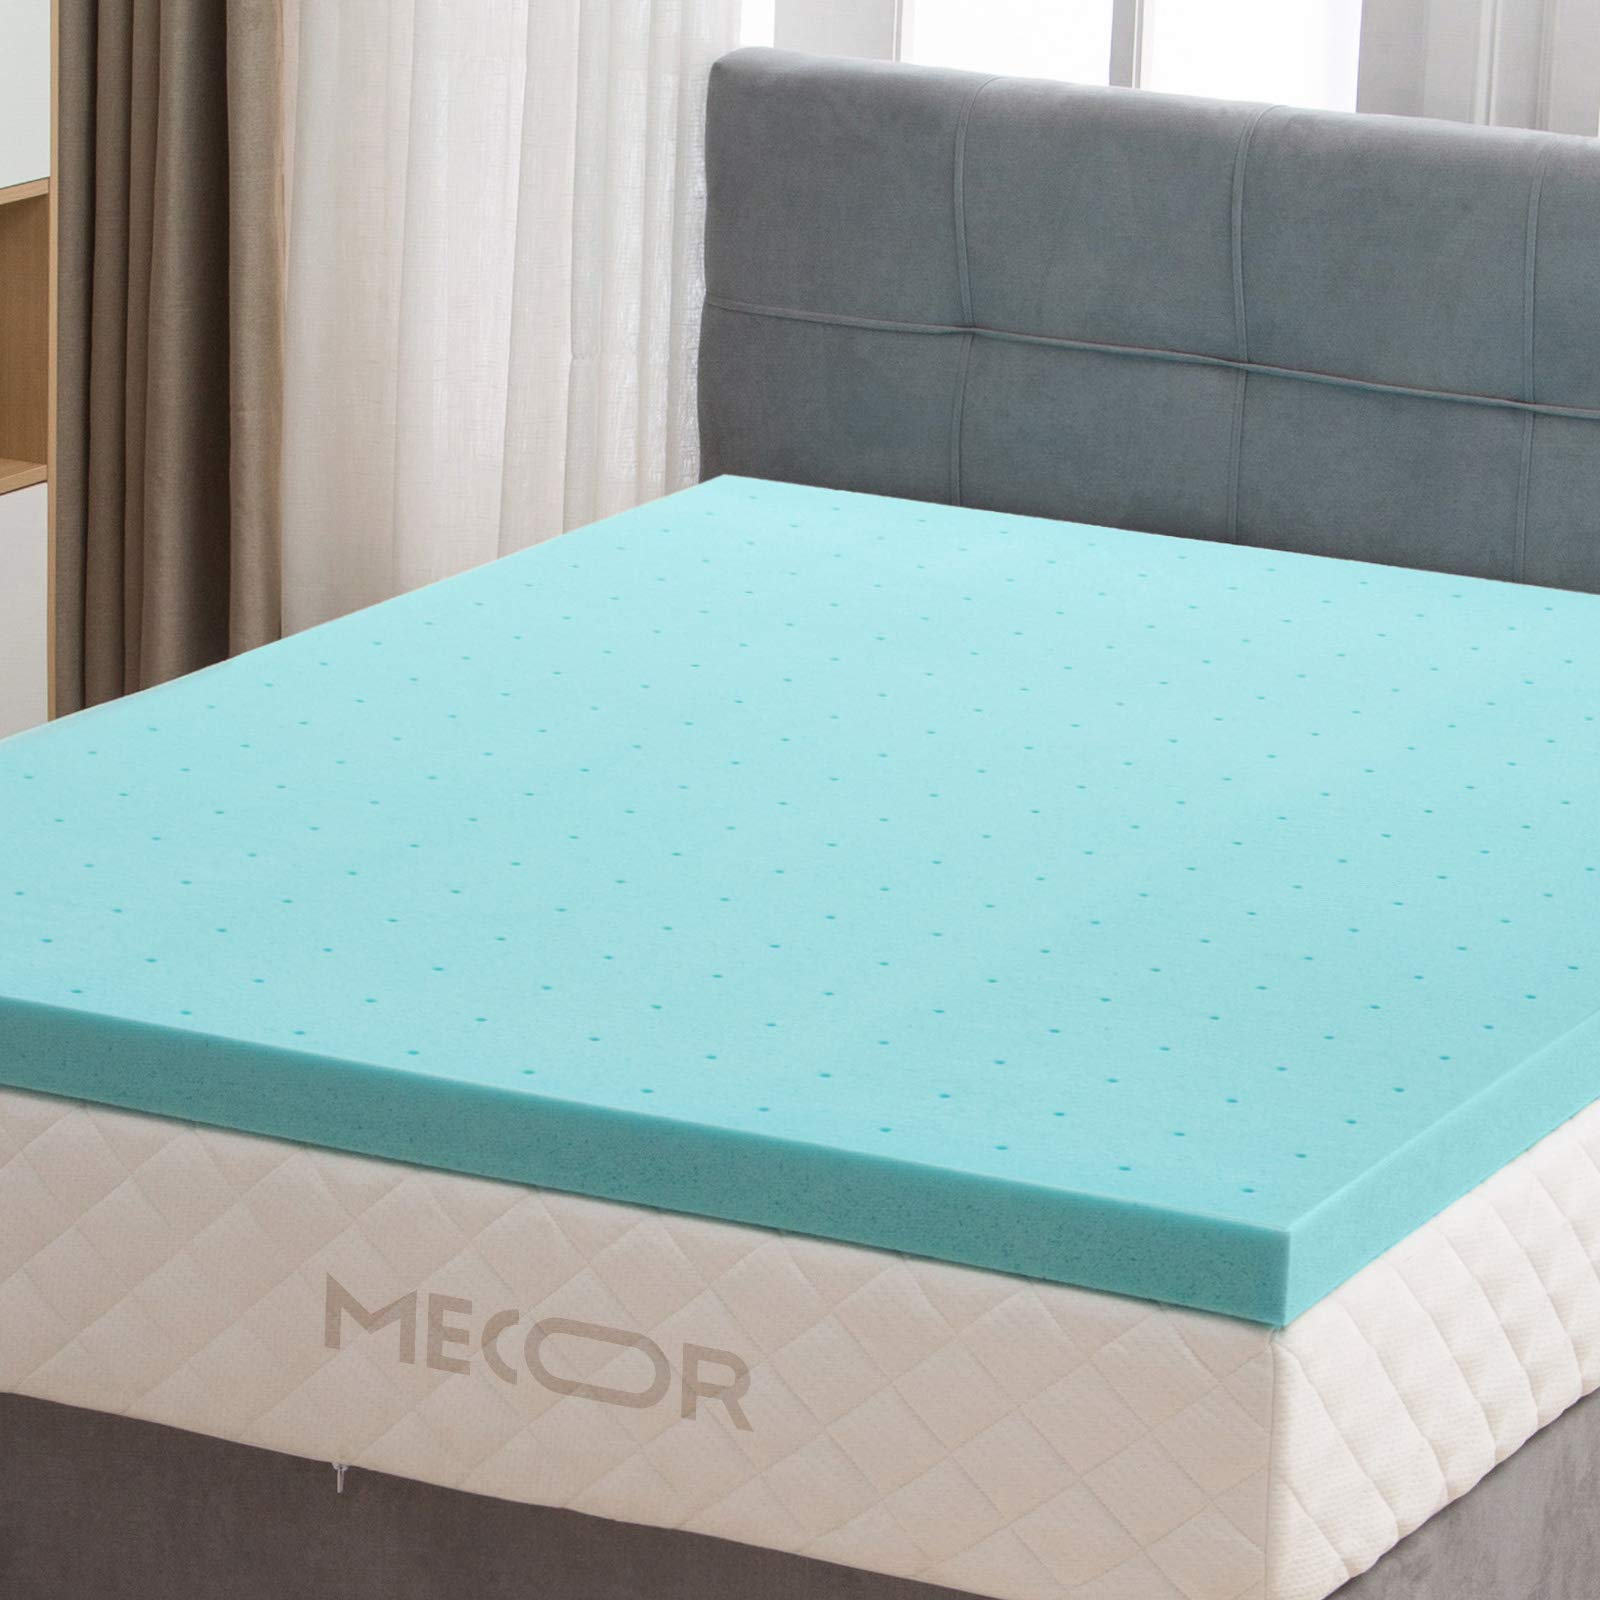 Mecor 3 Inch 3'' Mattress Topper Twin Size-100% Gel Infused Memory Foam Mattress Topper w/CertiPUR-US Certified Ventilated Foam Contributes to a Cooler Night Sleep, Soft but Firm Support, Blue